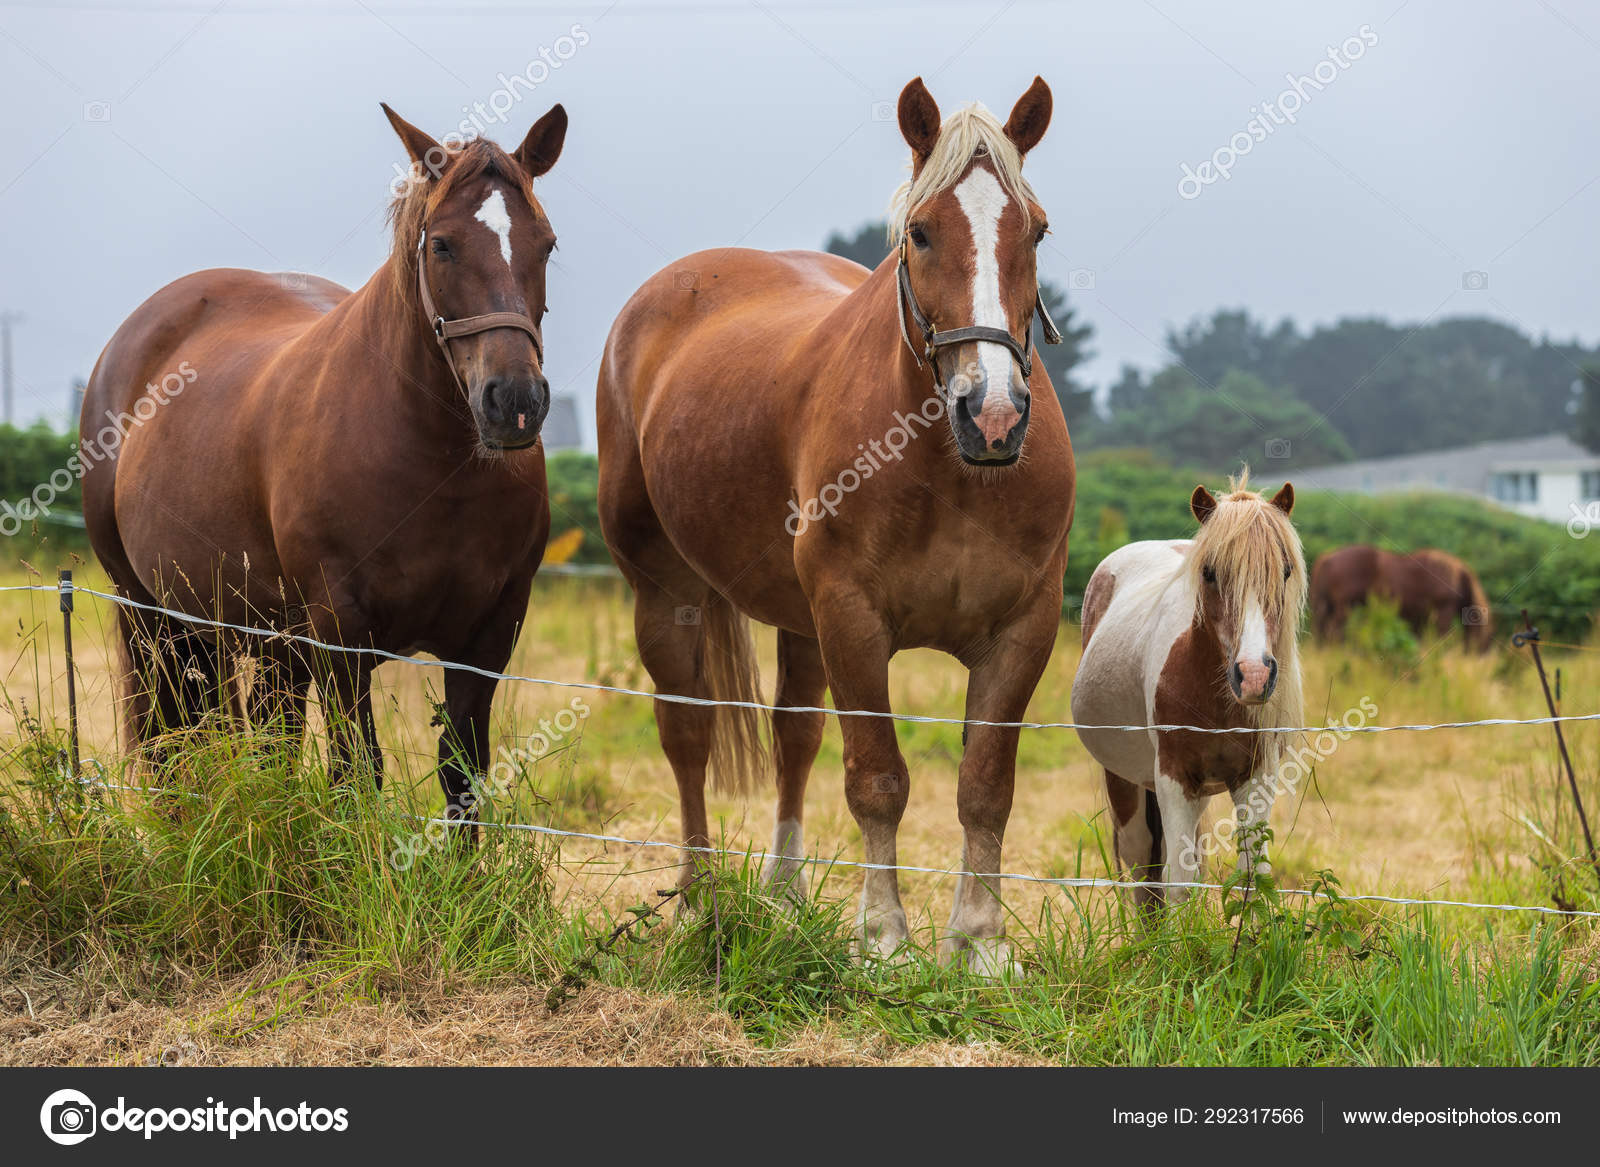 Family Of Tree Horses Stock Photo C Fernandorojano 292317566